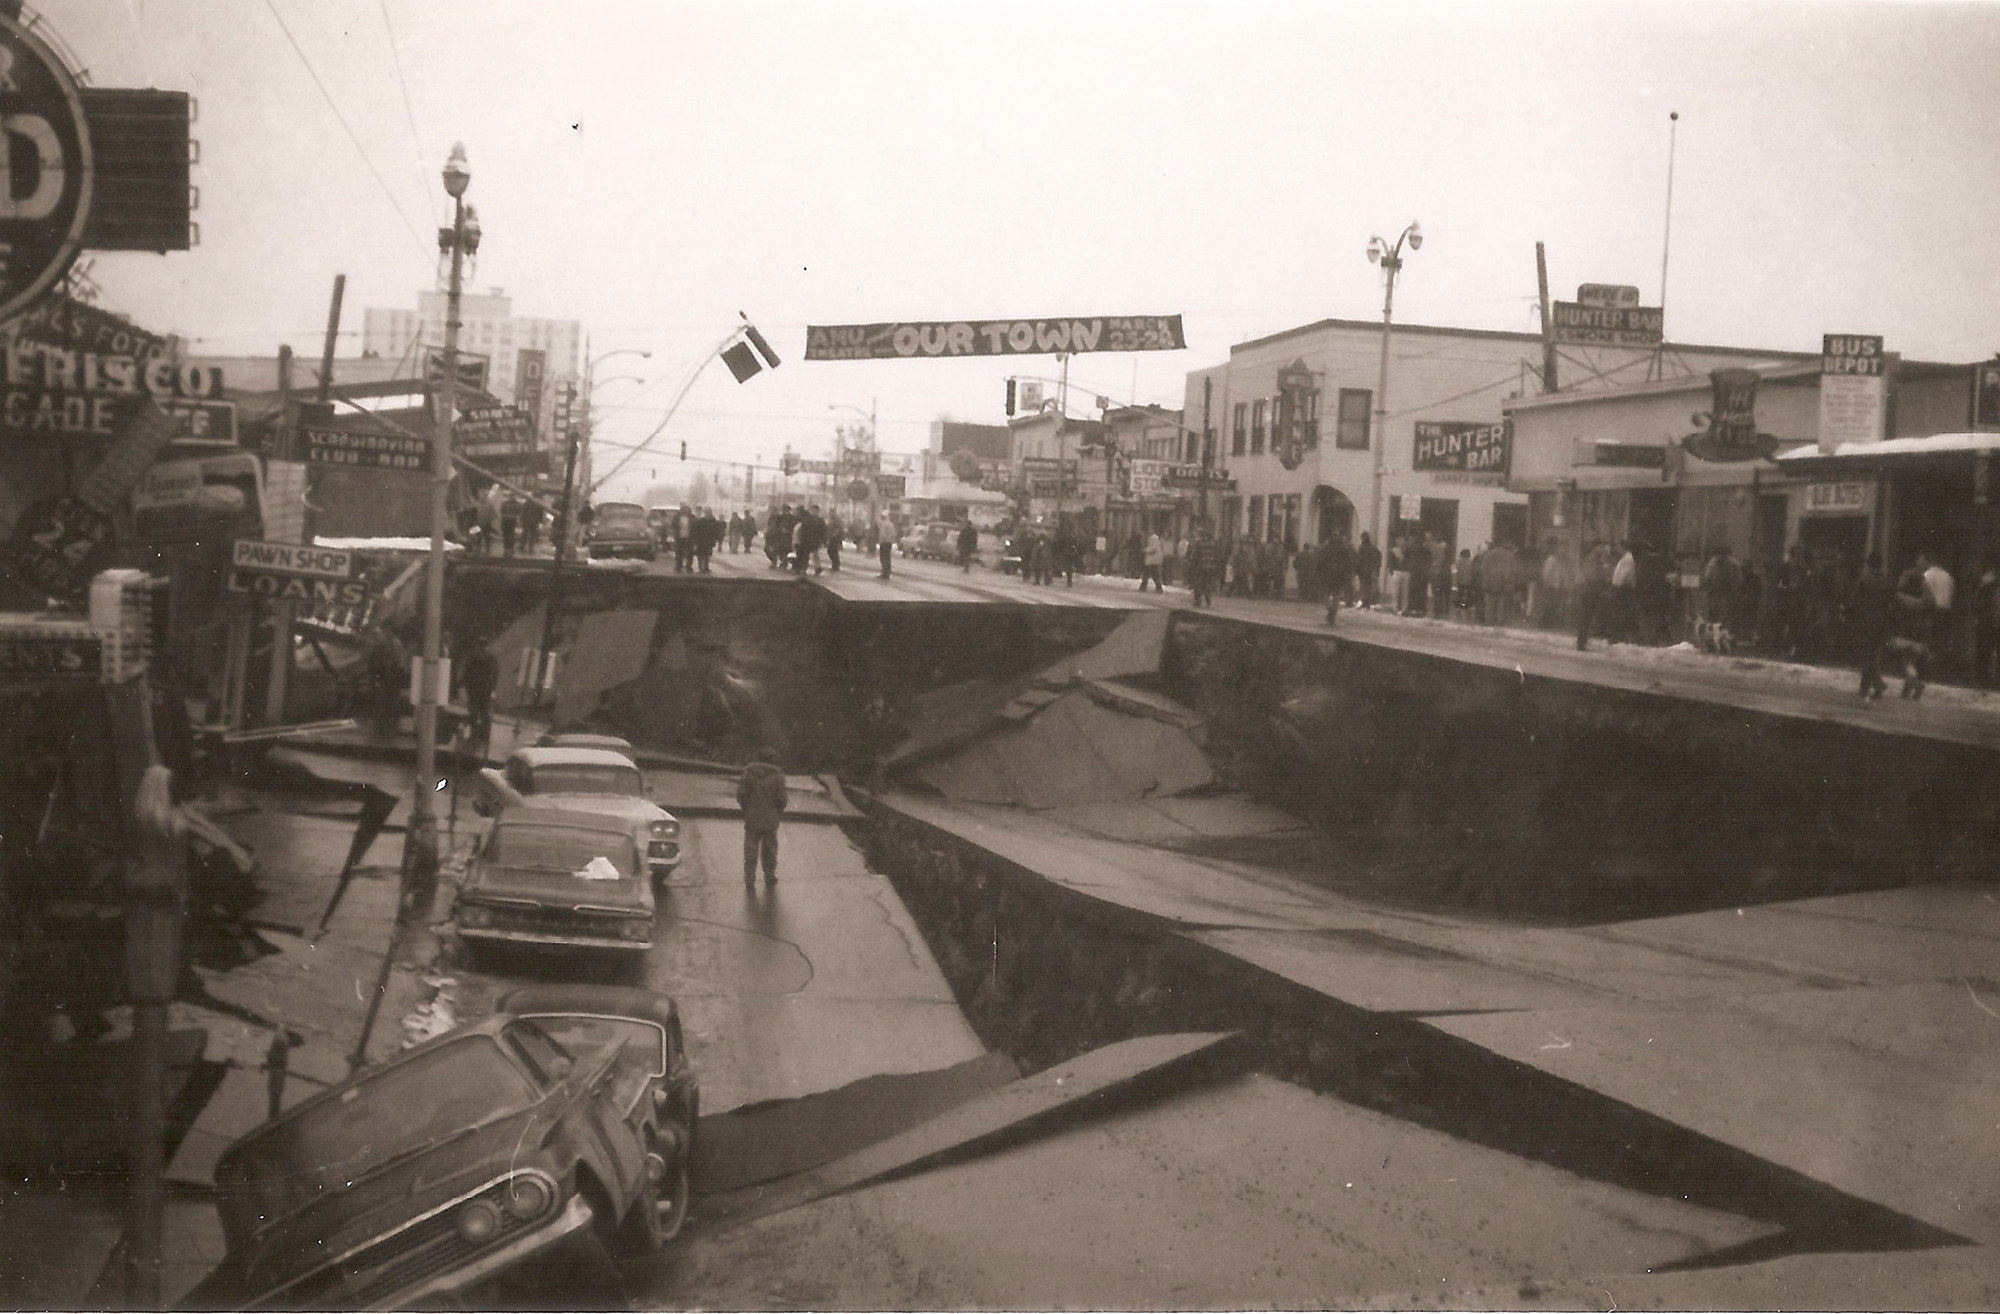 A destroyed street with a banner hanging over that says Our Town